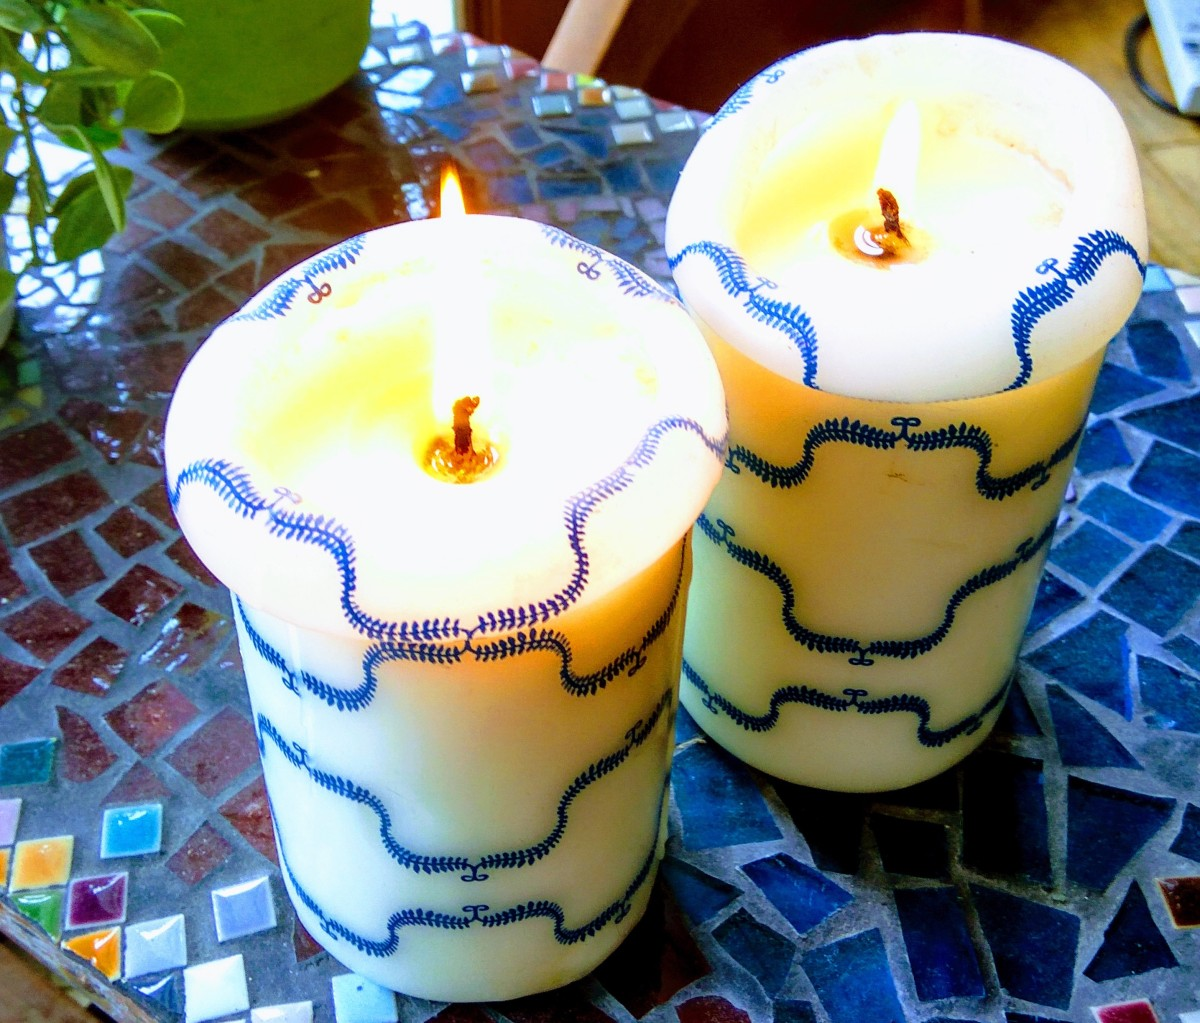 Light one candle forPeace